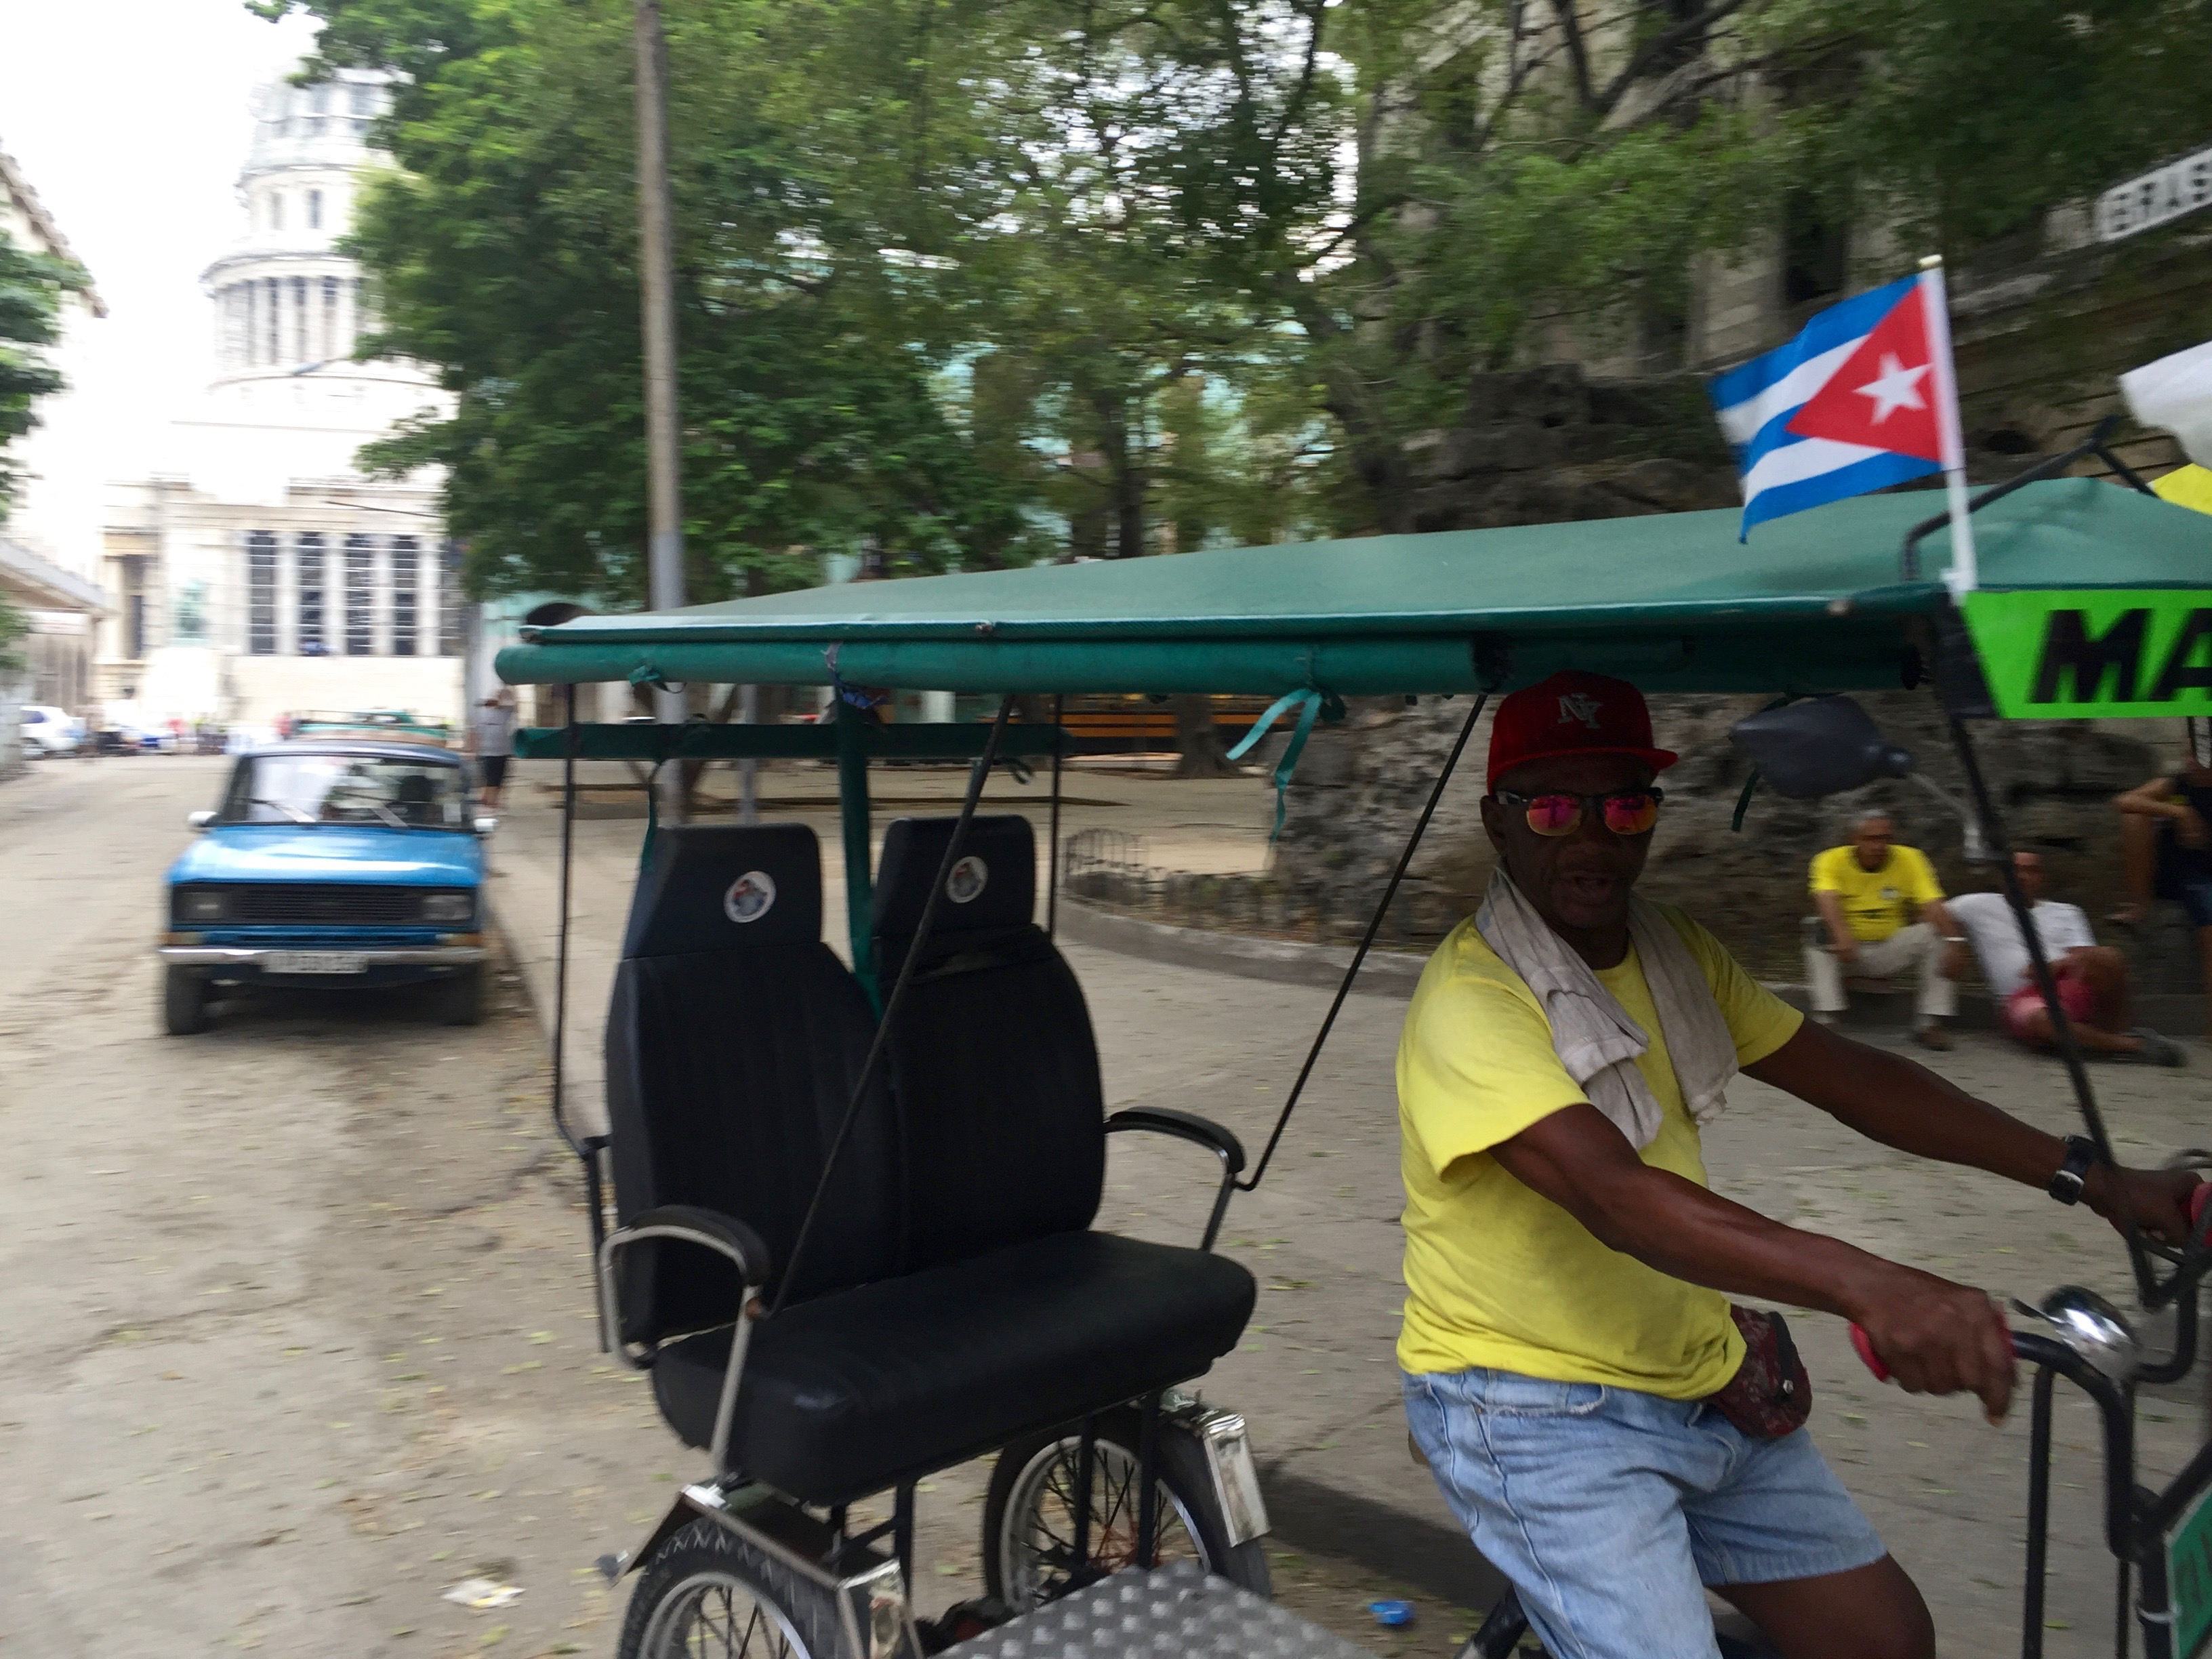 Senor Martin in his bicitaxi, a common mode of transport in Havana.